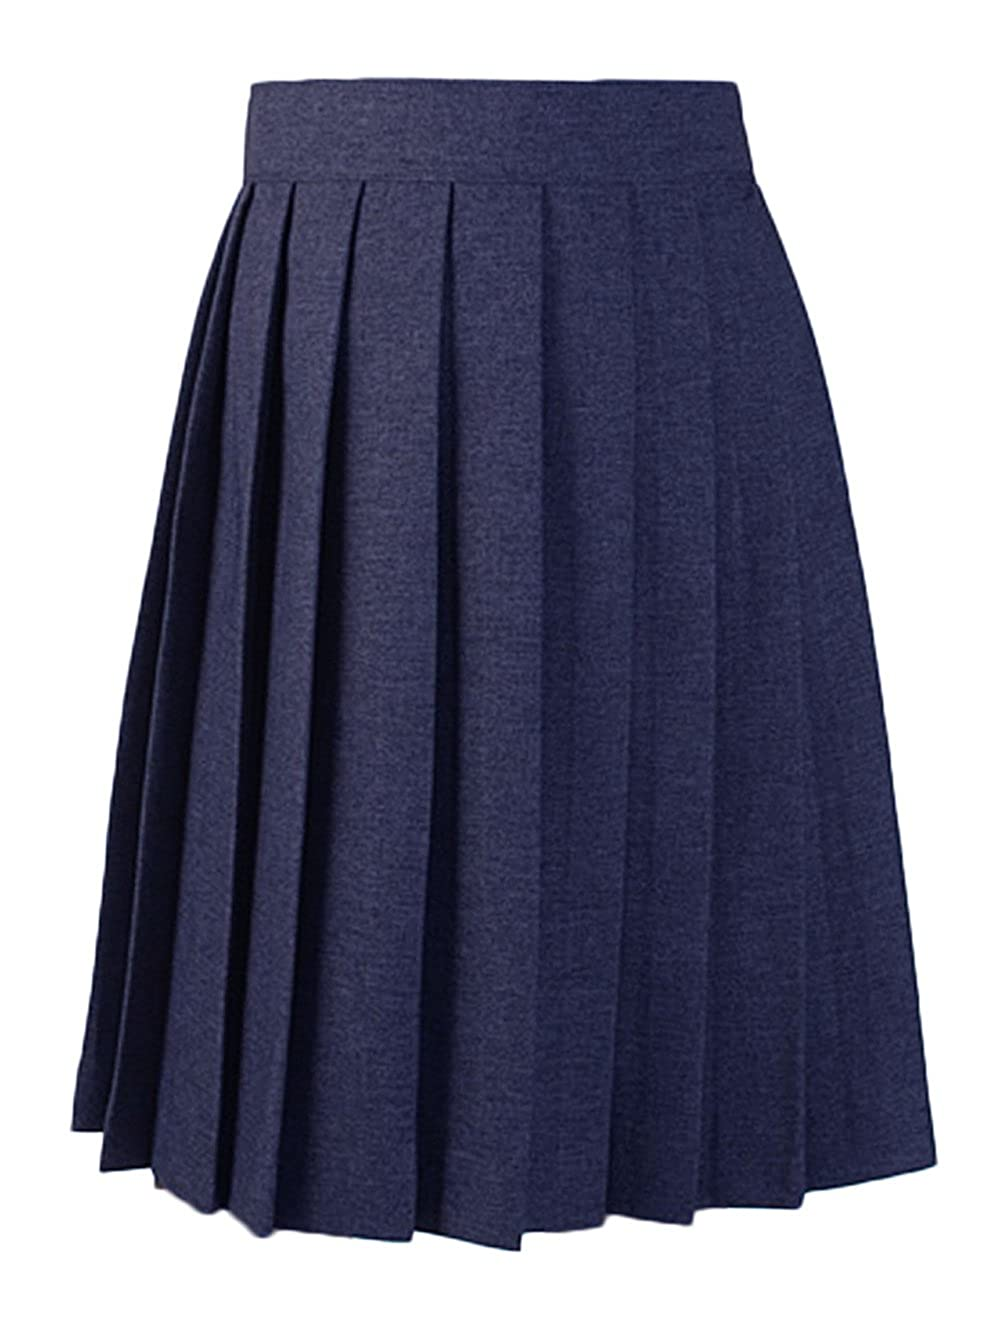 French Toast Pleated Skirt - navy, 10